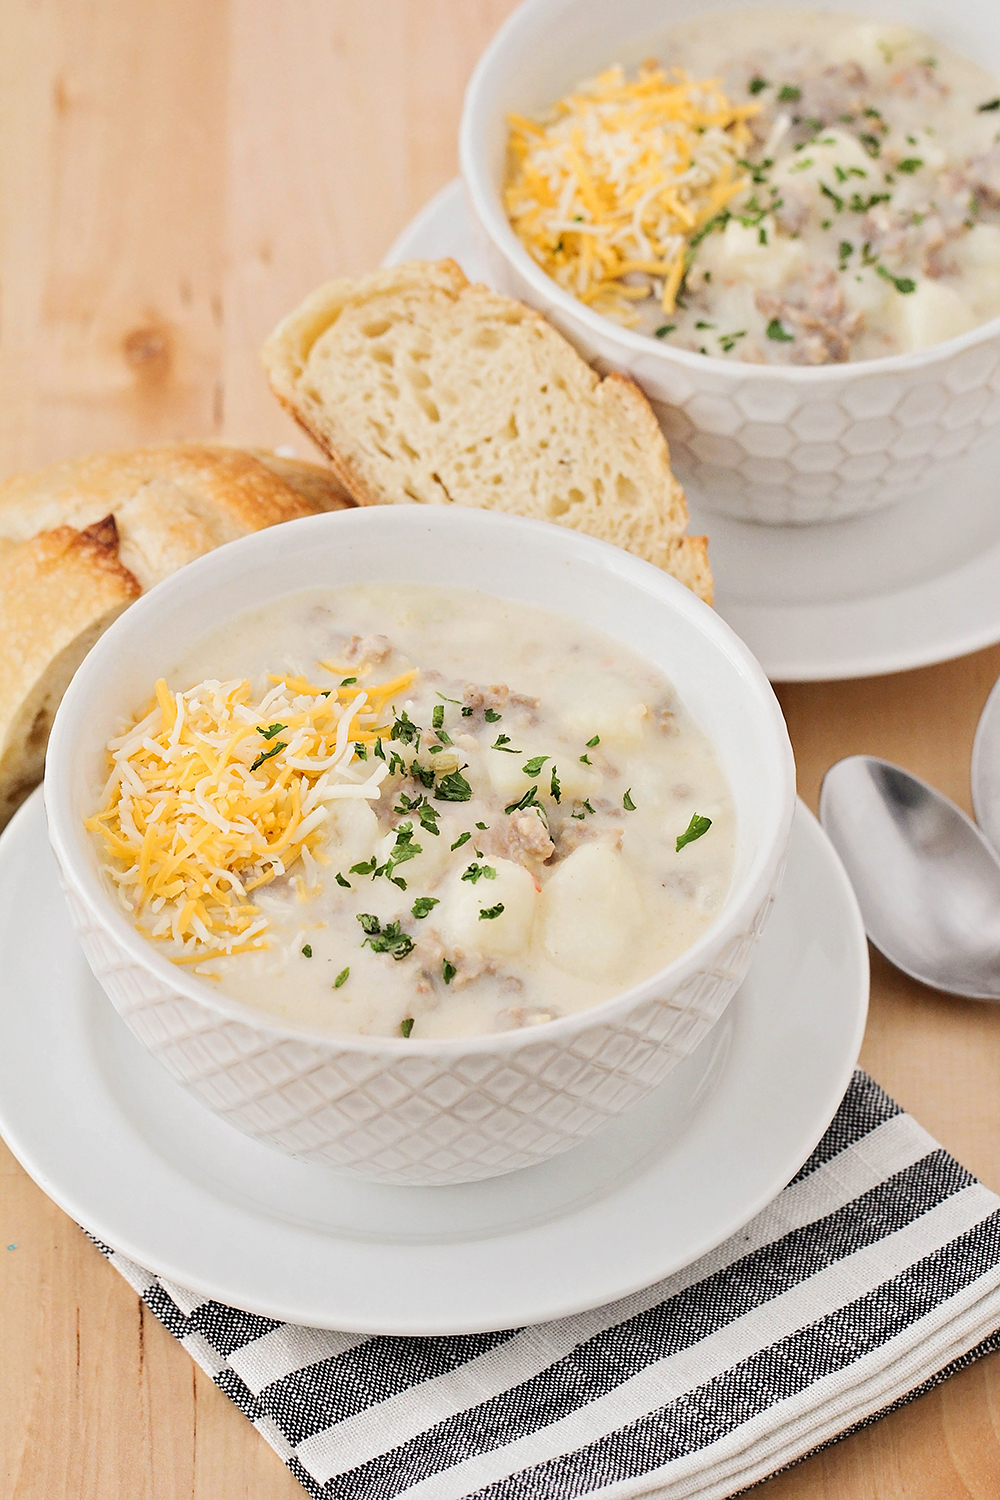 This cheesy sausage and potato chowder is a hearty and filling meal that's perfect for a cold night!